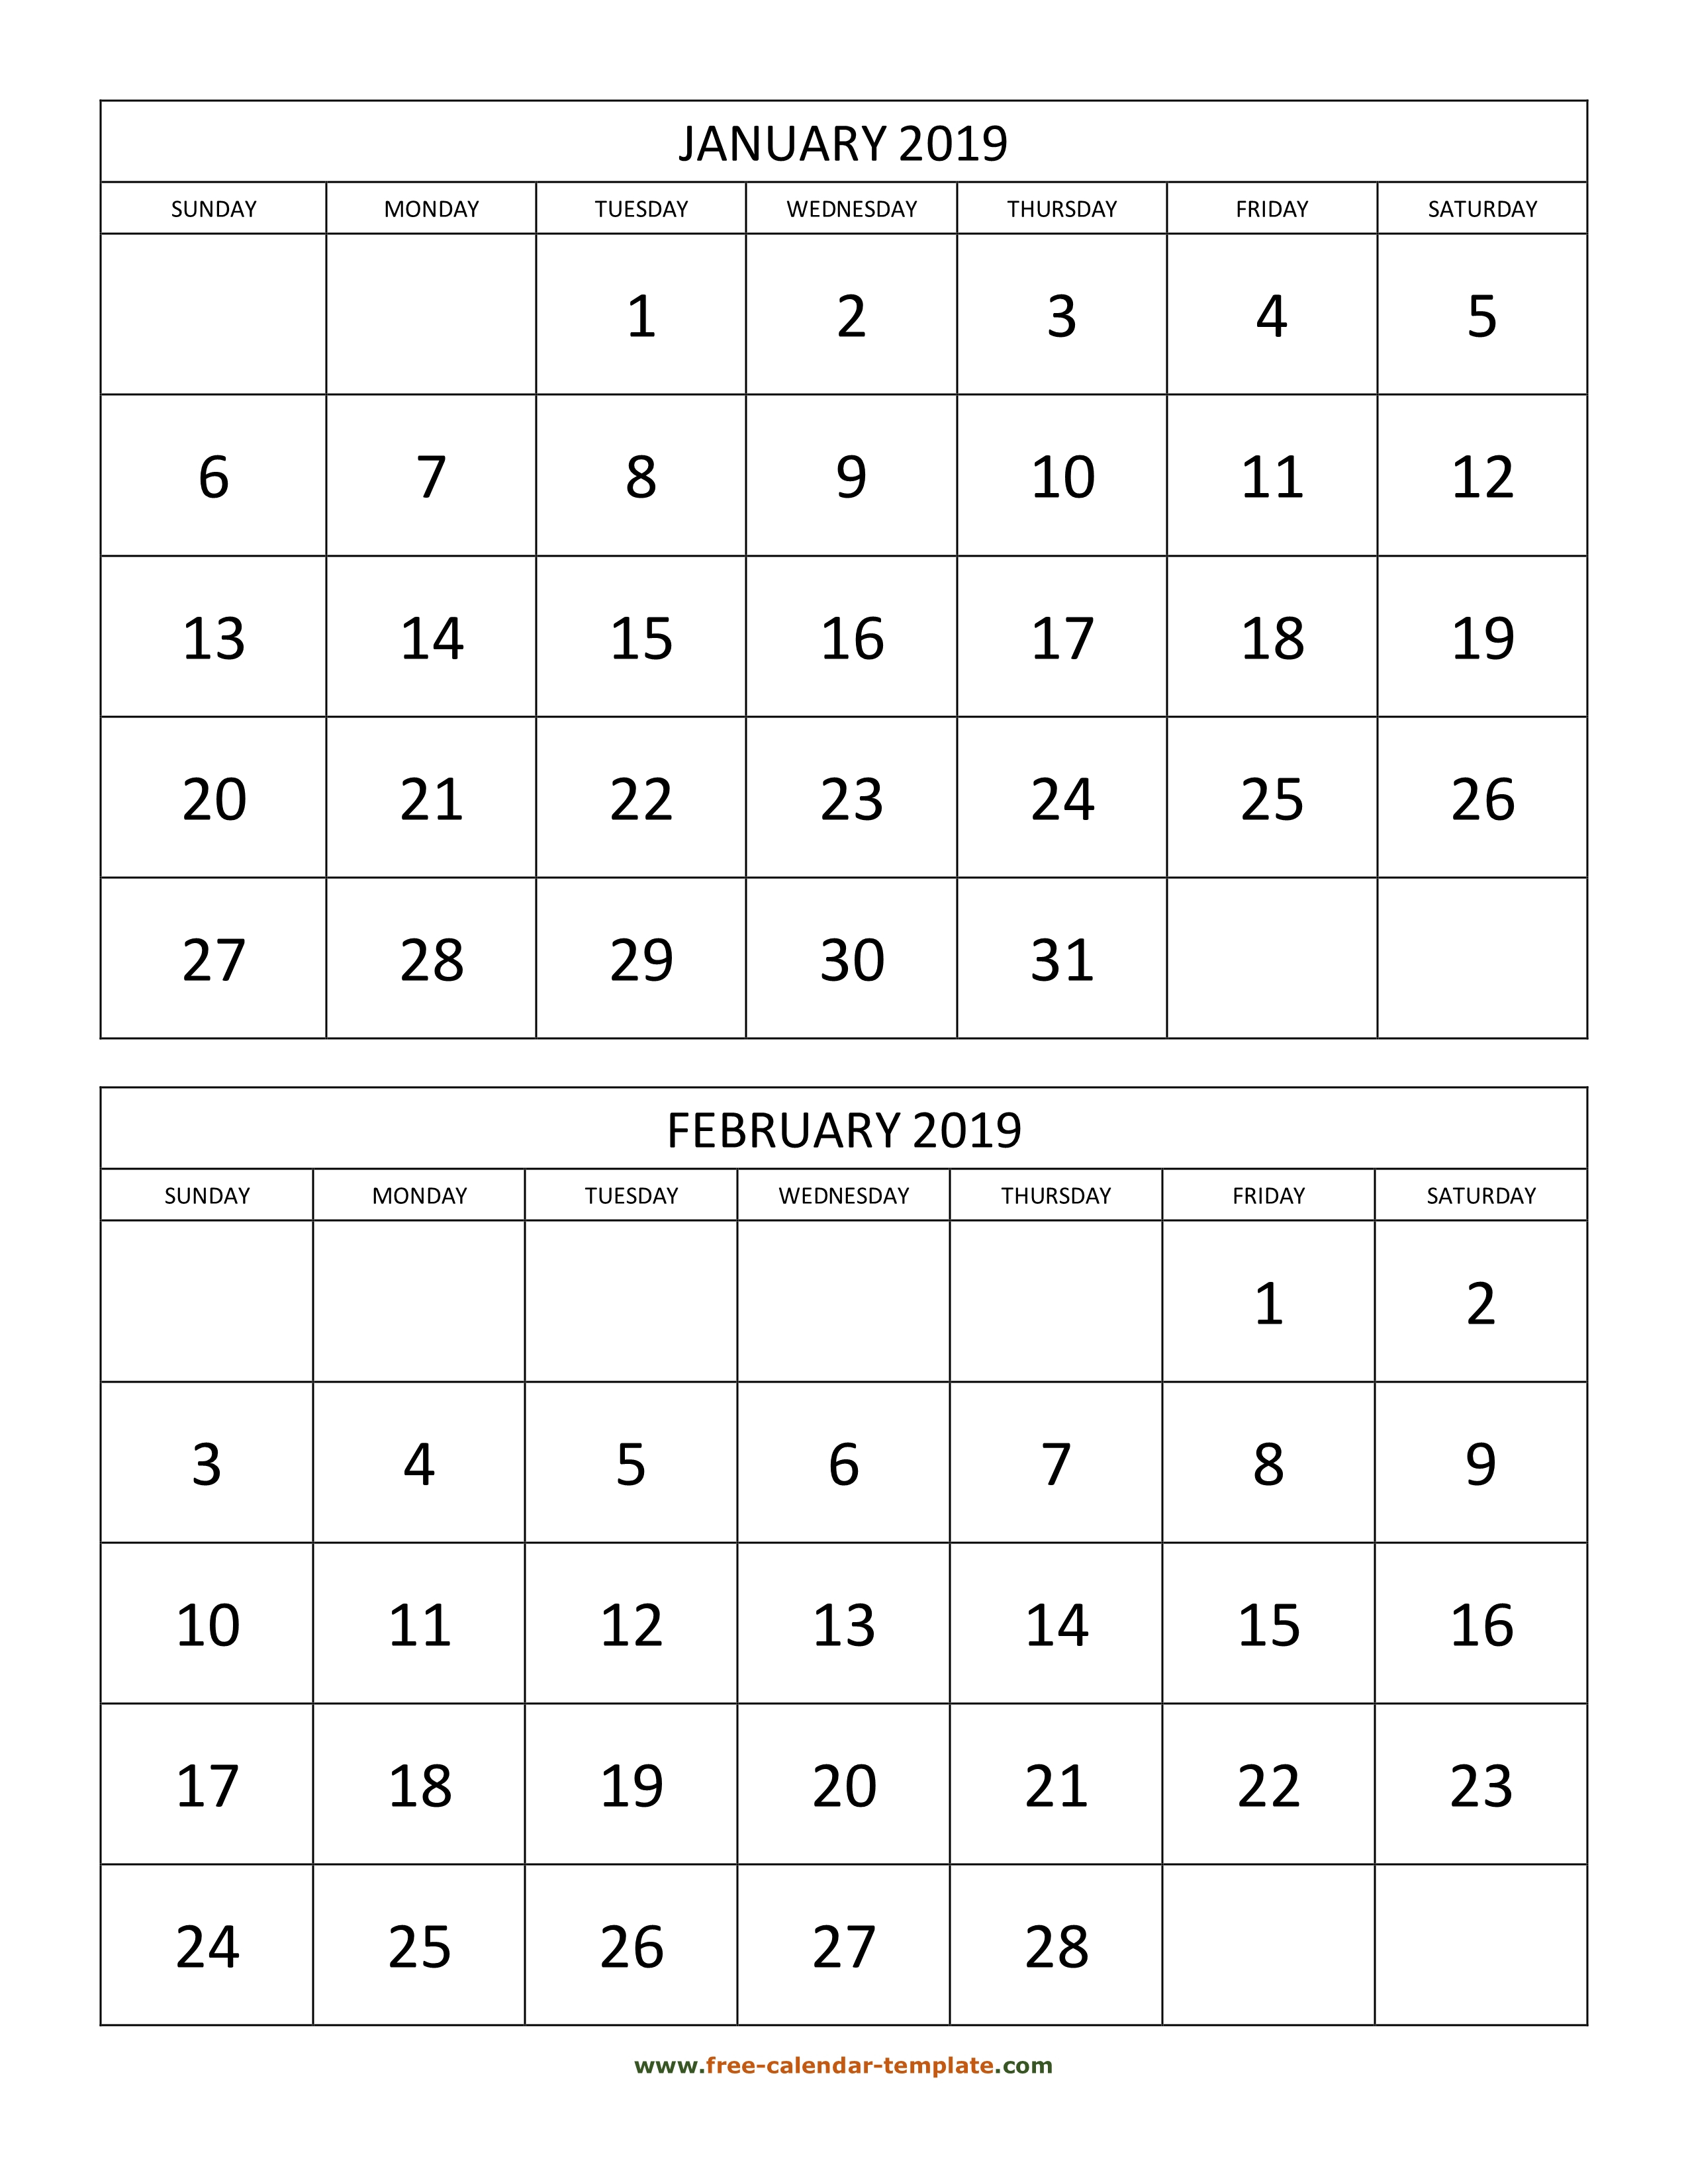 Monthly Calendar 2019, 2 Months Per Page (Vertical) | Free regarding Printable Calendar 2020 3 Months Per Page